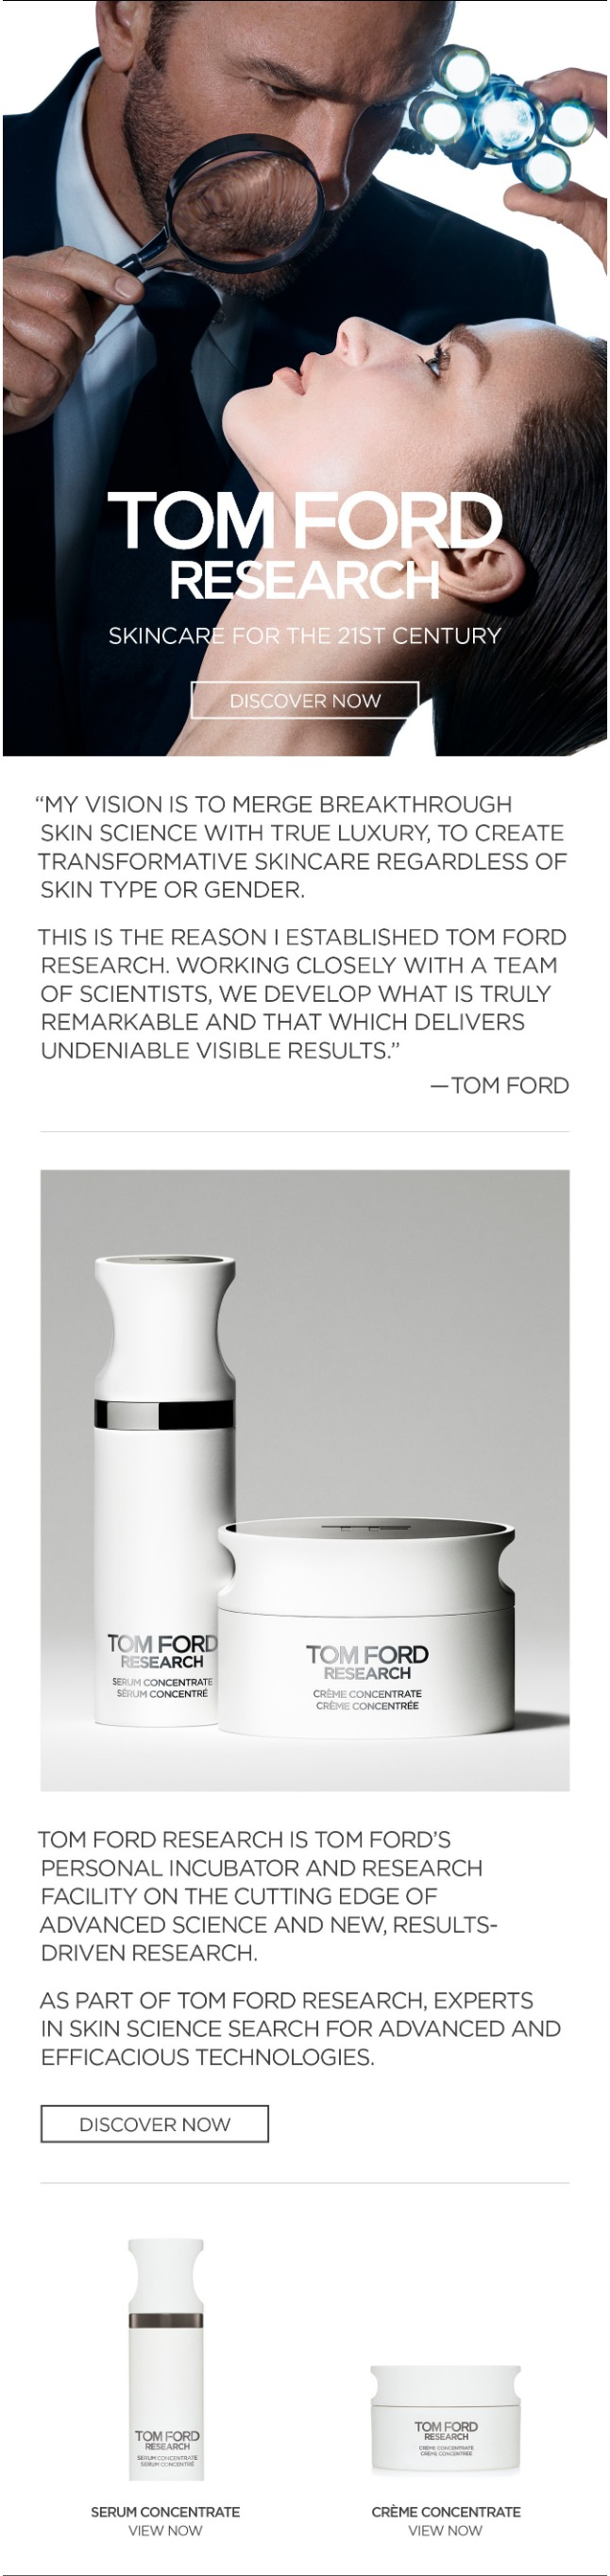 INTRODUCING TOM FORD RESEARCH